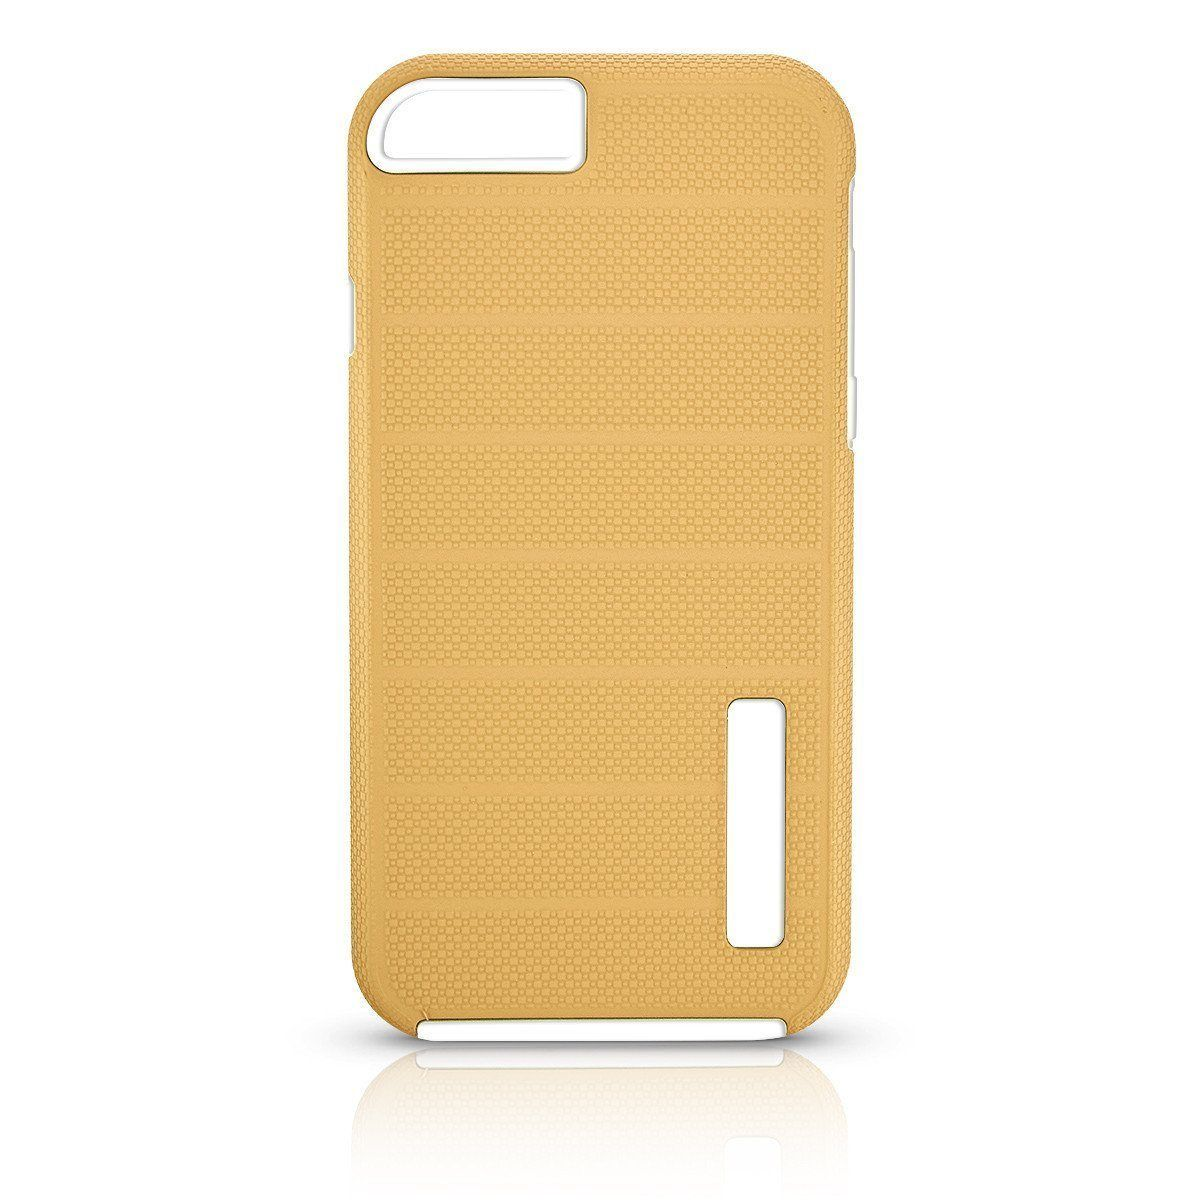 Destiny Case For I7 /8 - Gold